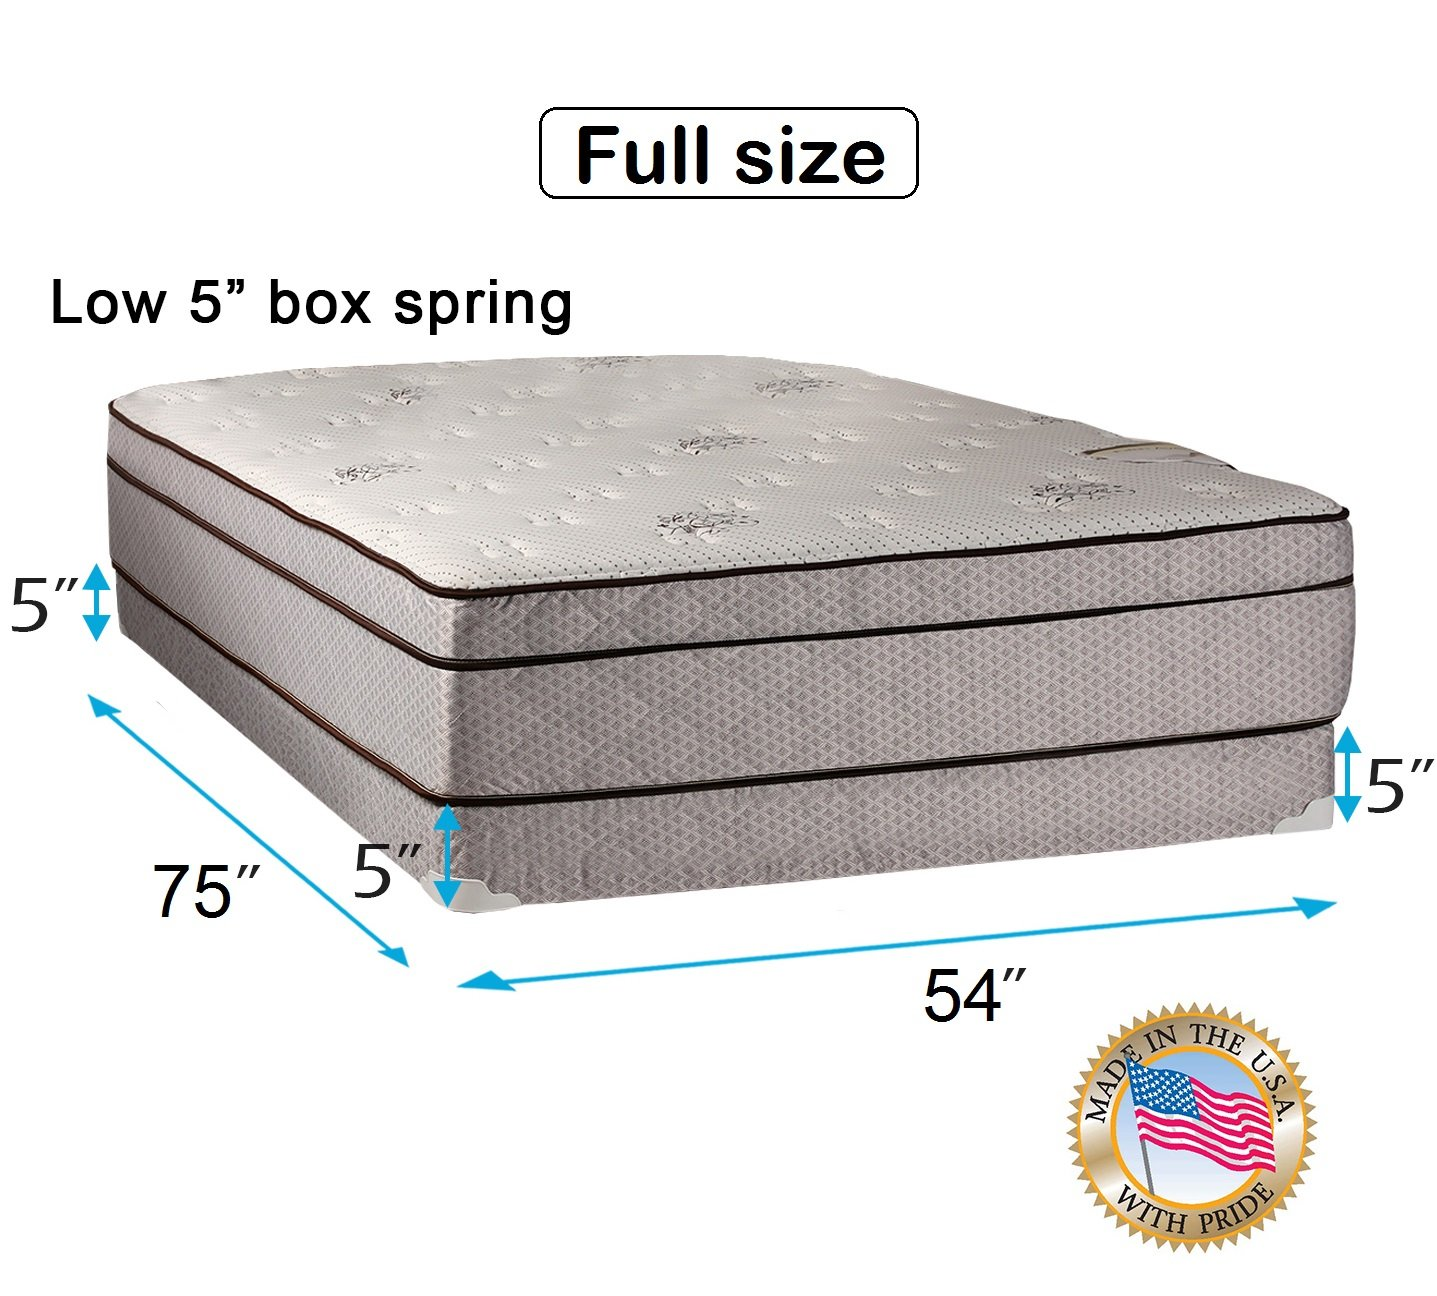 Dream Solutions Fifth Ave Extra Soft Foam Eurotop (PillowTop) Full Mattress & Low 5'' Height Box Spring Set with Mattress Cover Protector Included - Fully Assembled, Orthopedic, Quality Sleep System by Dream Solutions USA